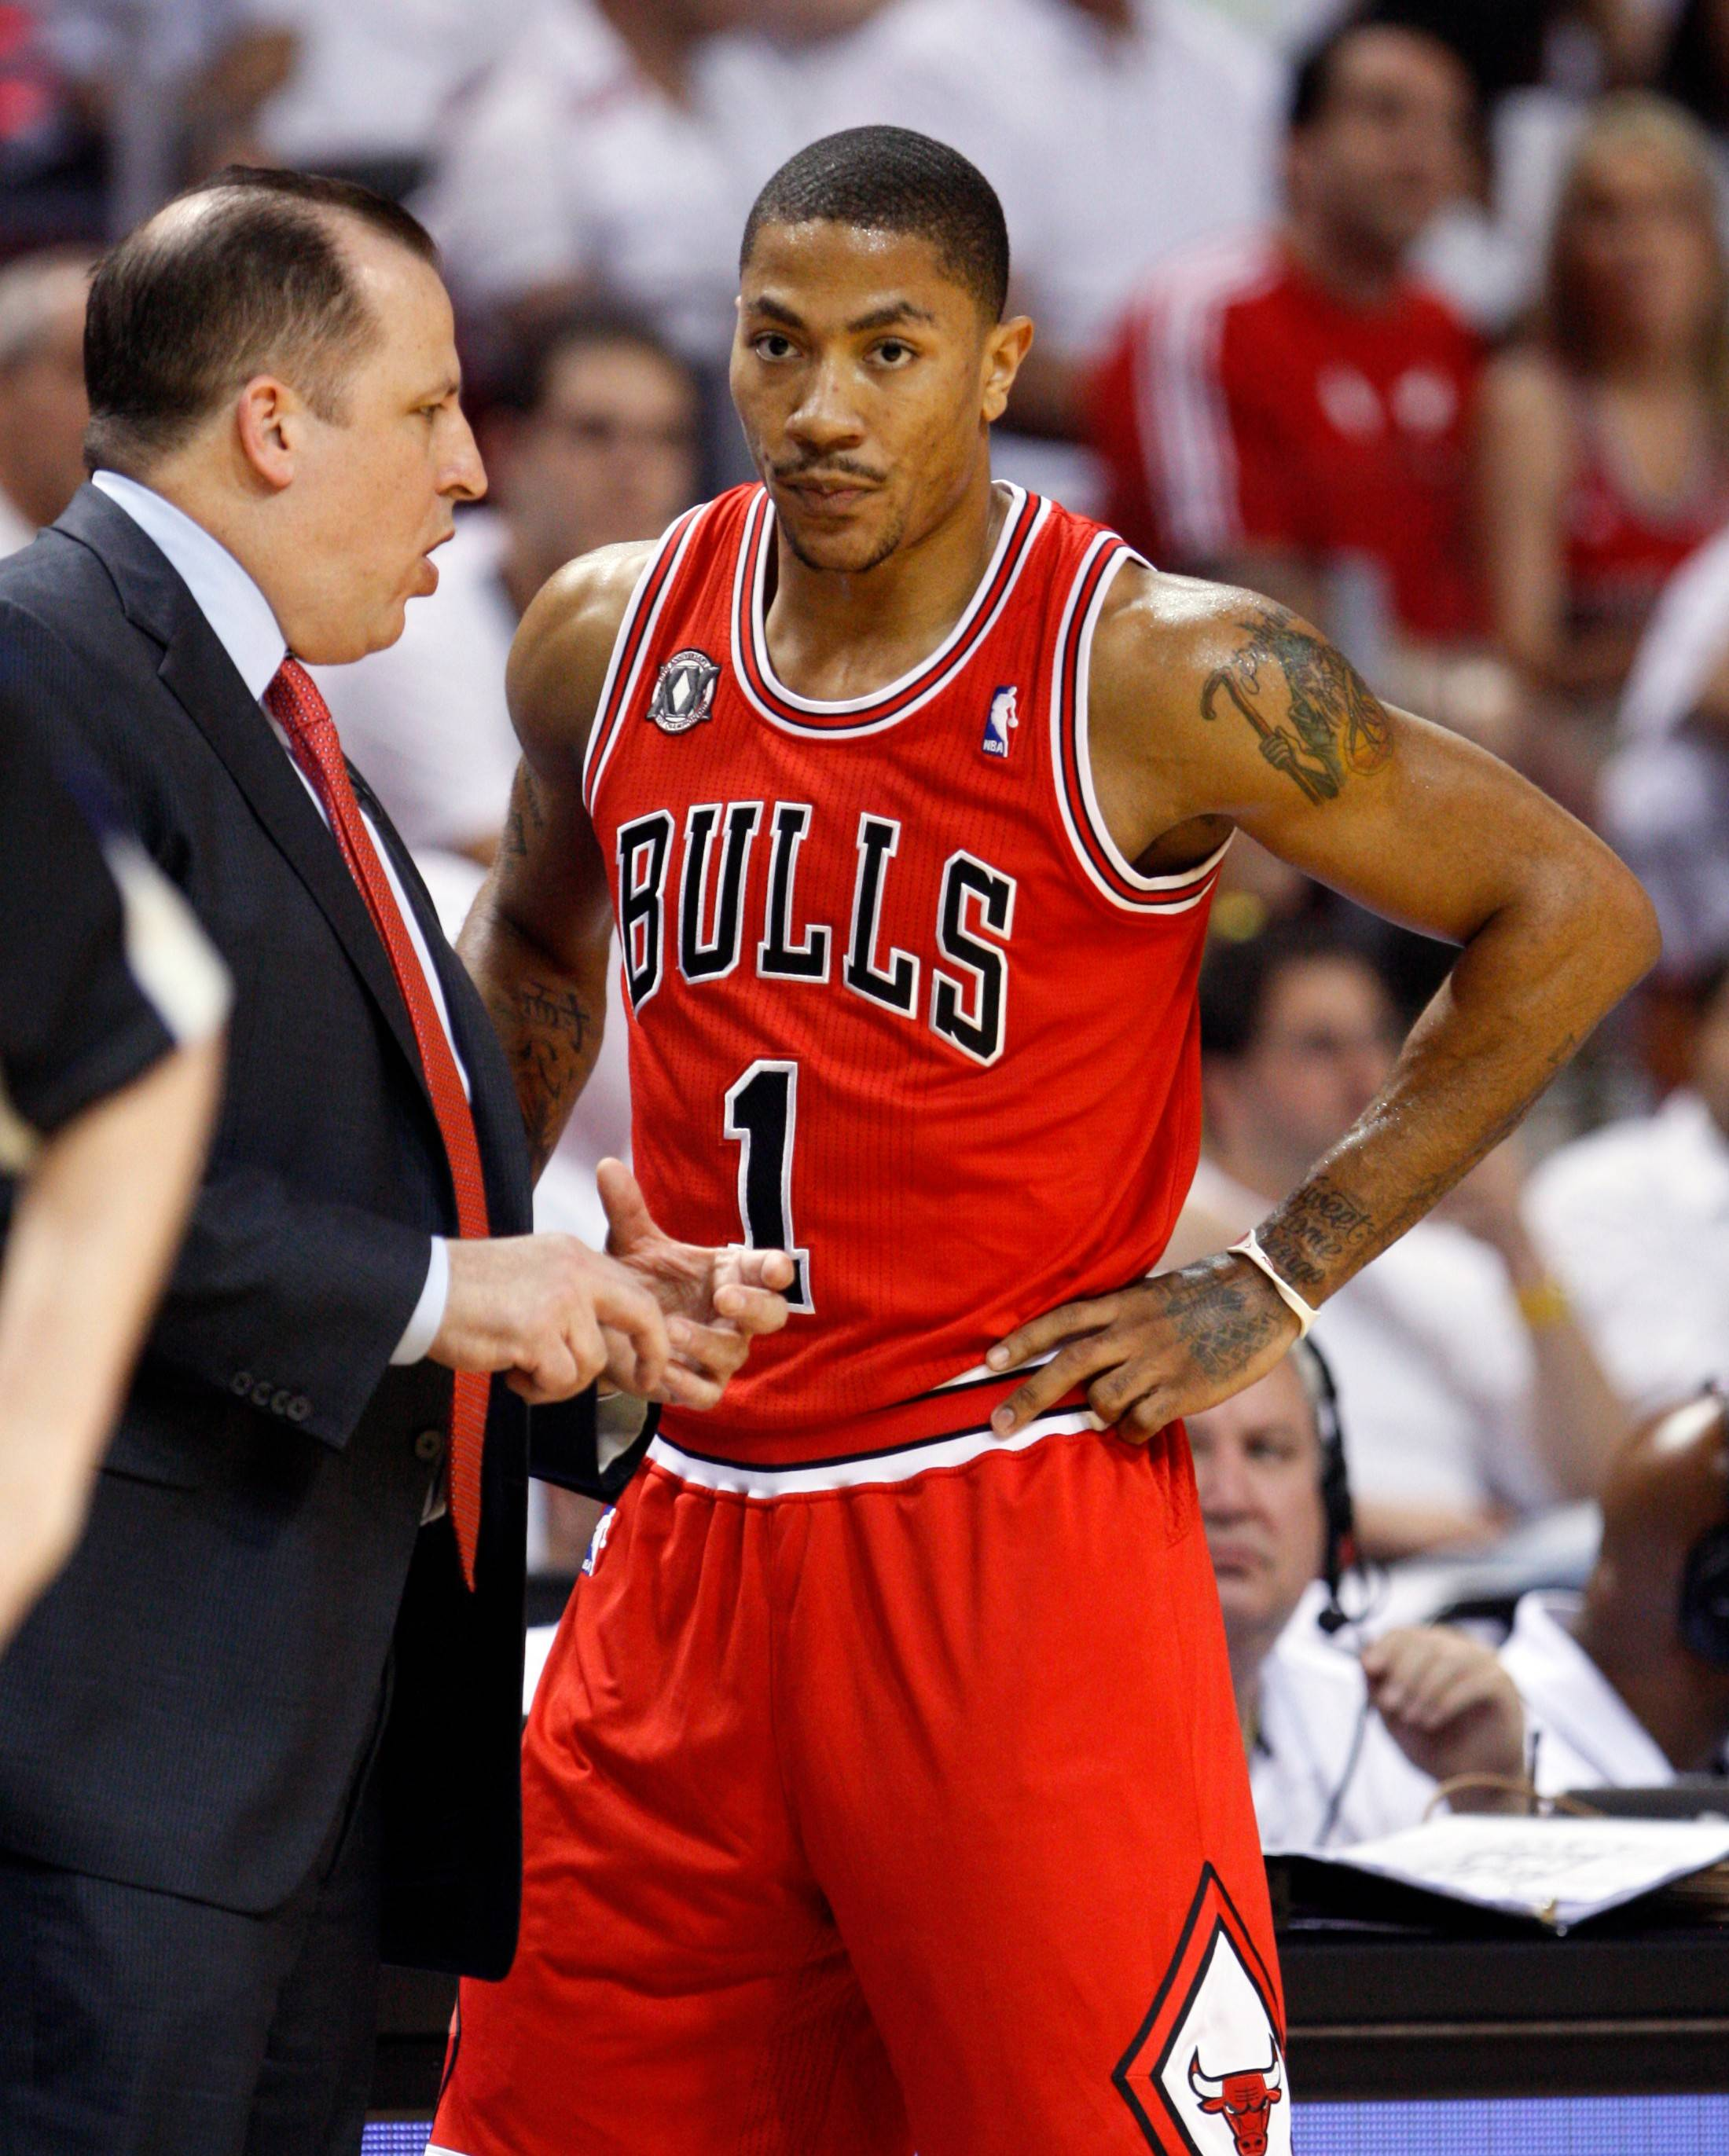 Tom Thibodeau will help coach Team USA in an exhibition game against Brazil in August, and there's a possibility that Derrick Rose will make the team and play.